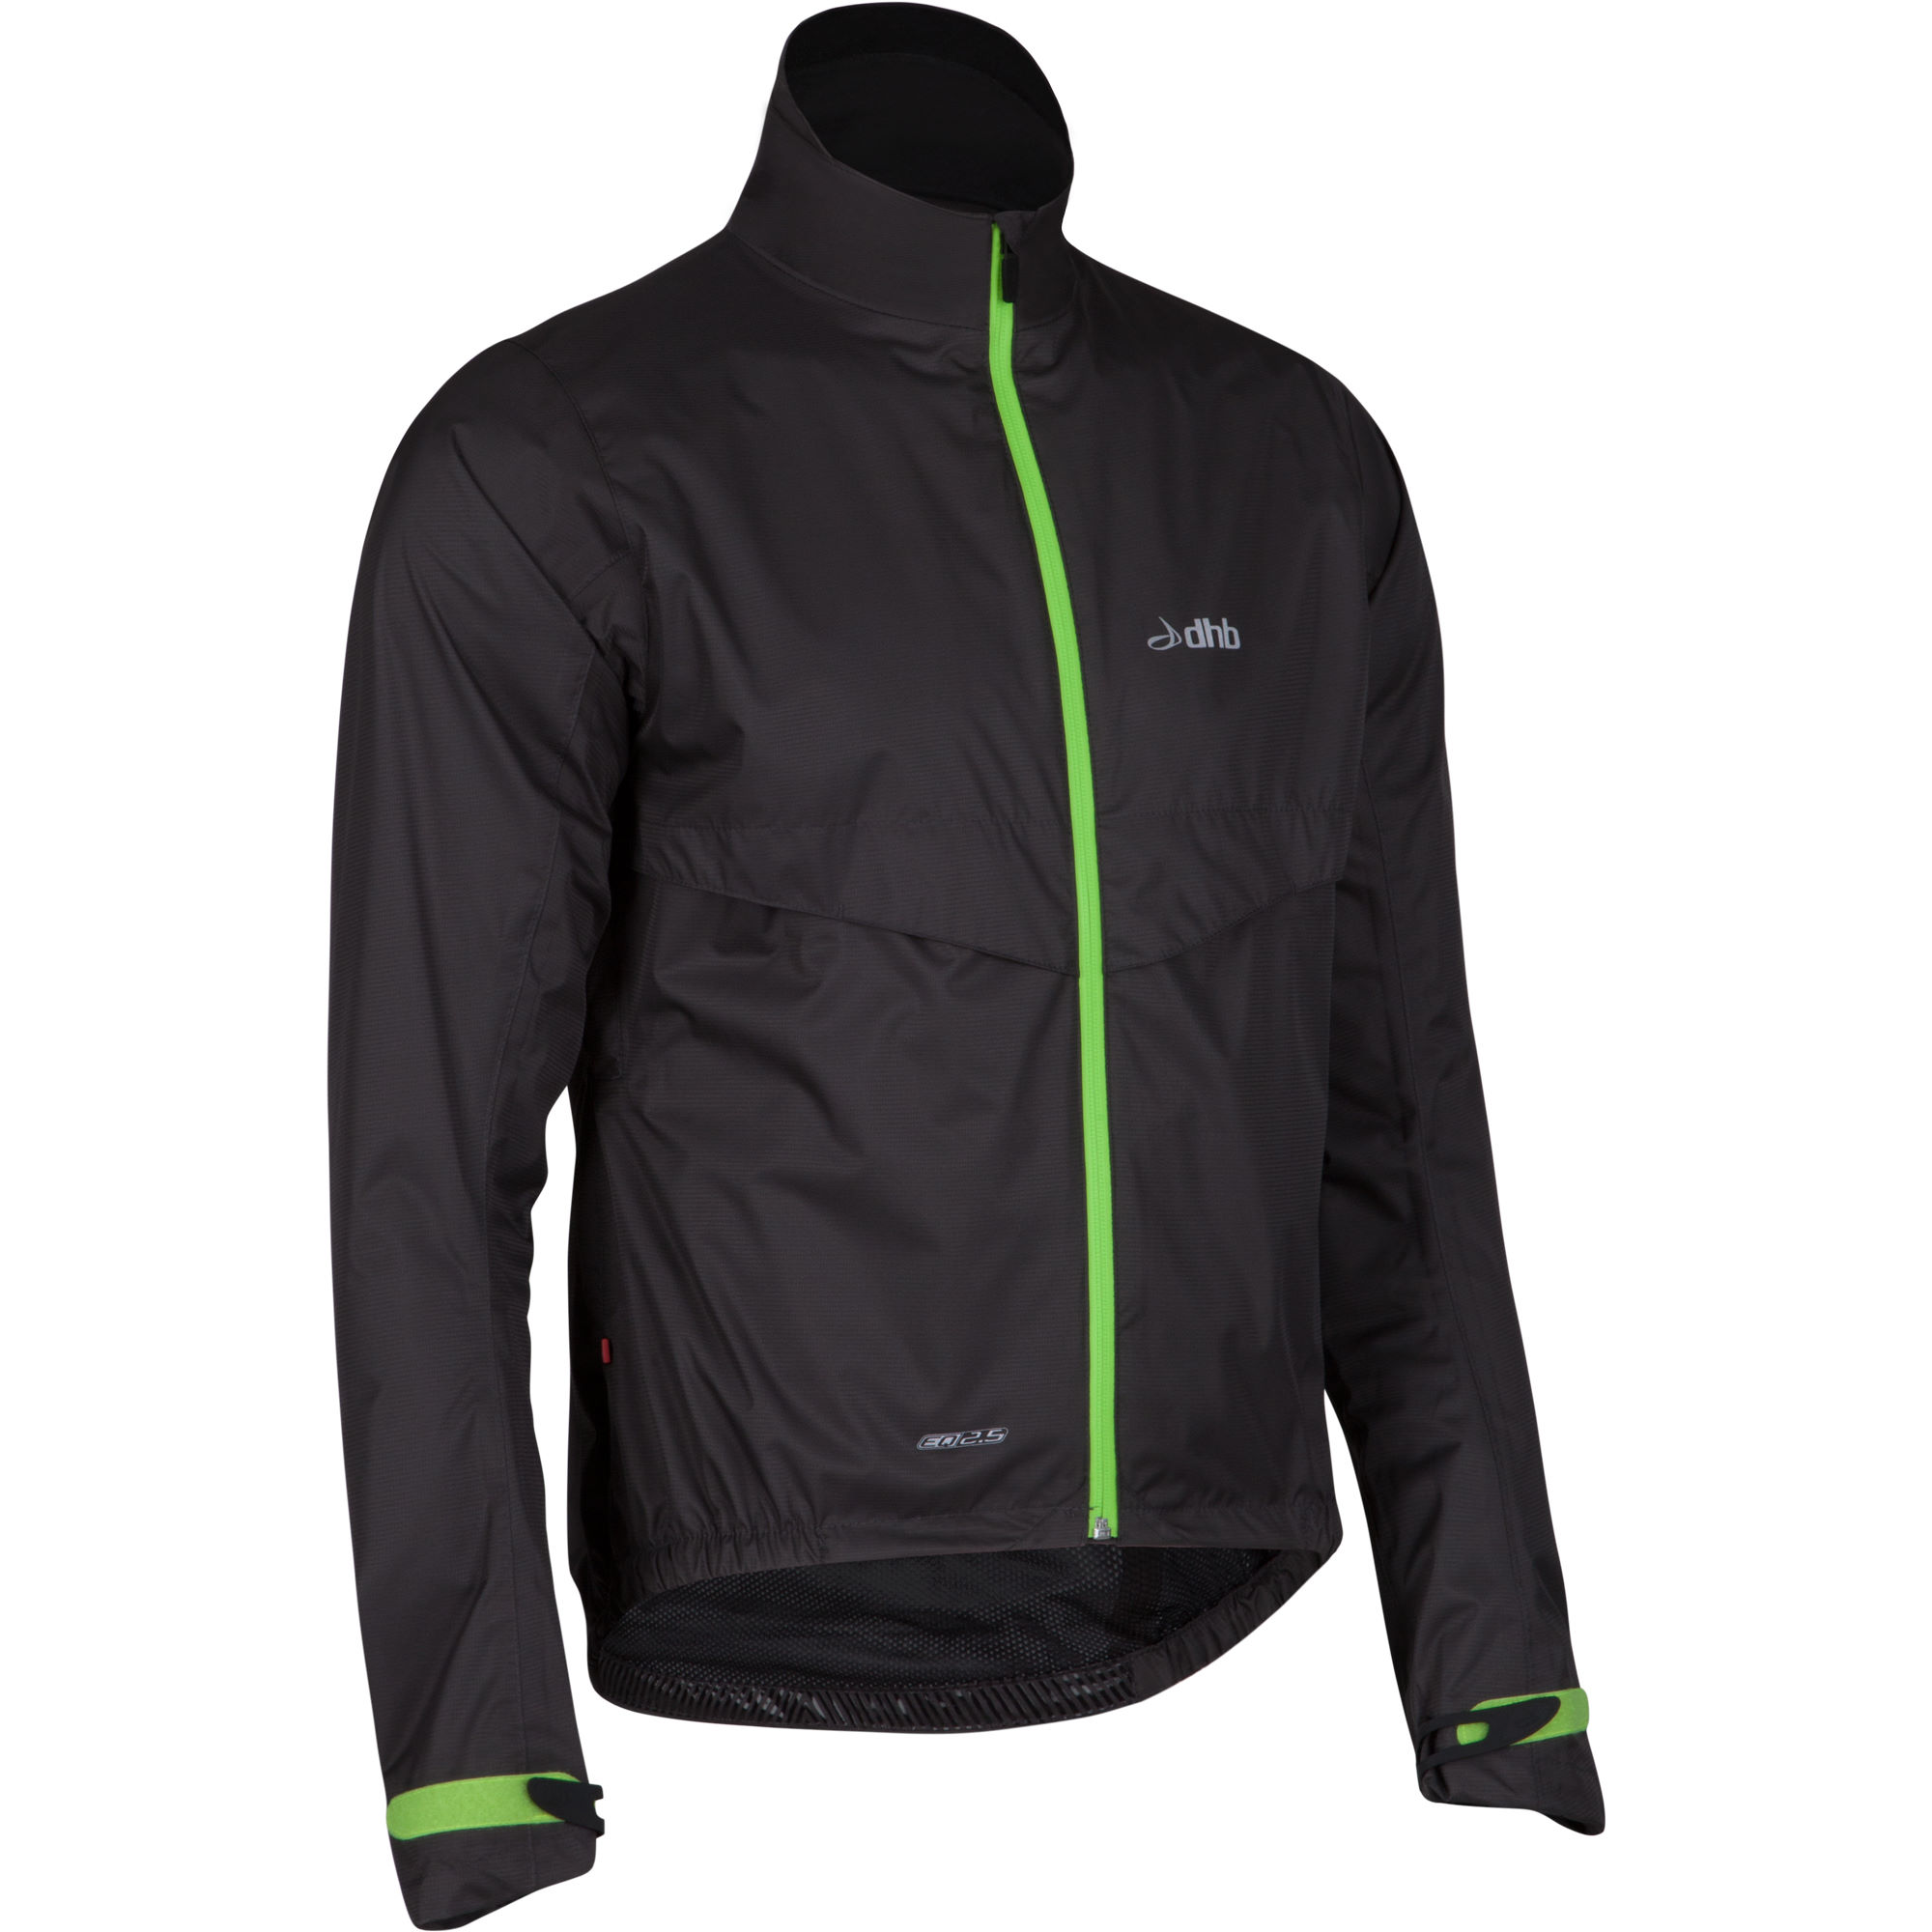 Wiggle Womens Cycle Clothing